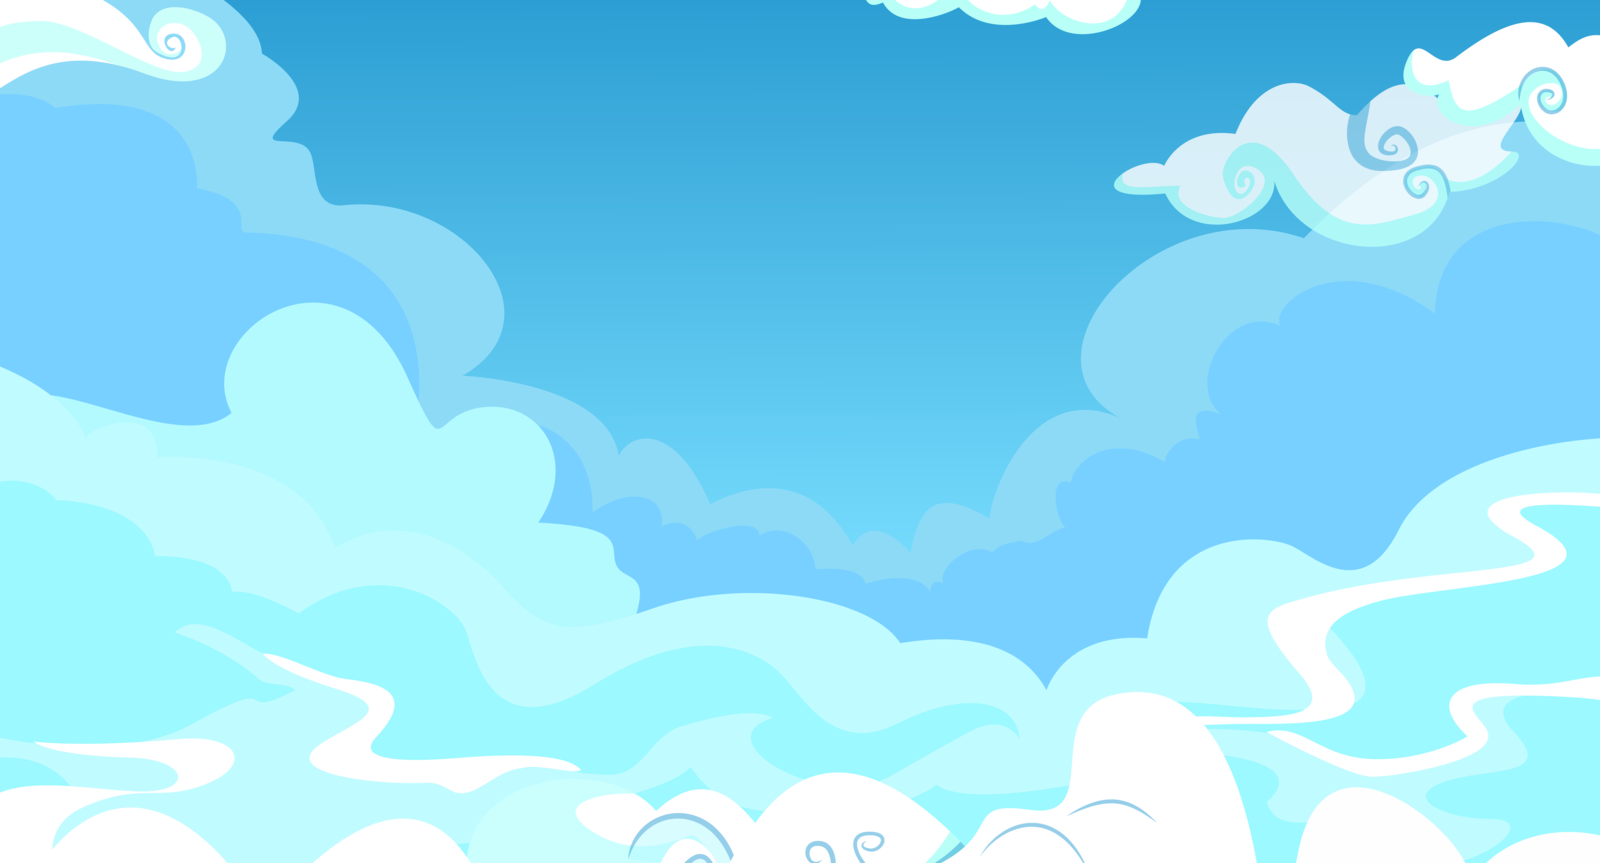 Cloudy Sky Background By Goblinengineer On Deviantart